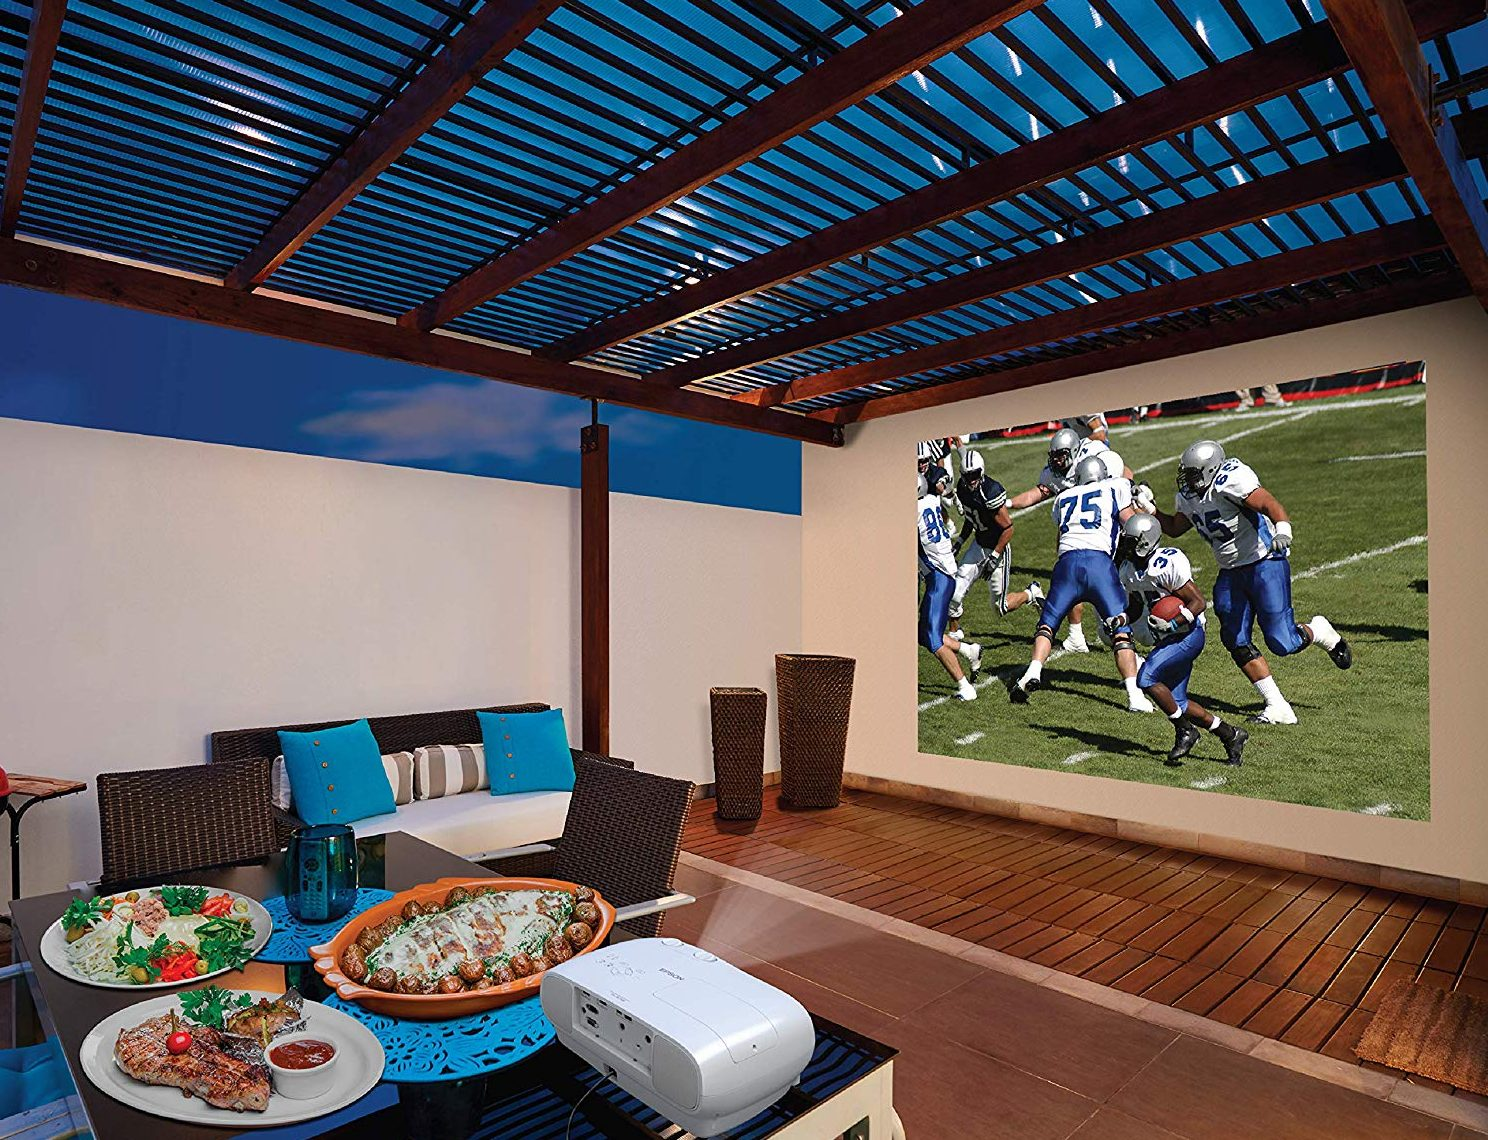 Best Super Bowl Tv Deals 2020 Home Theater Systems 4k Tvs On Sale Rolling Stone